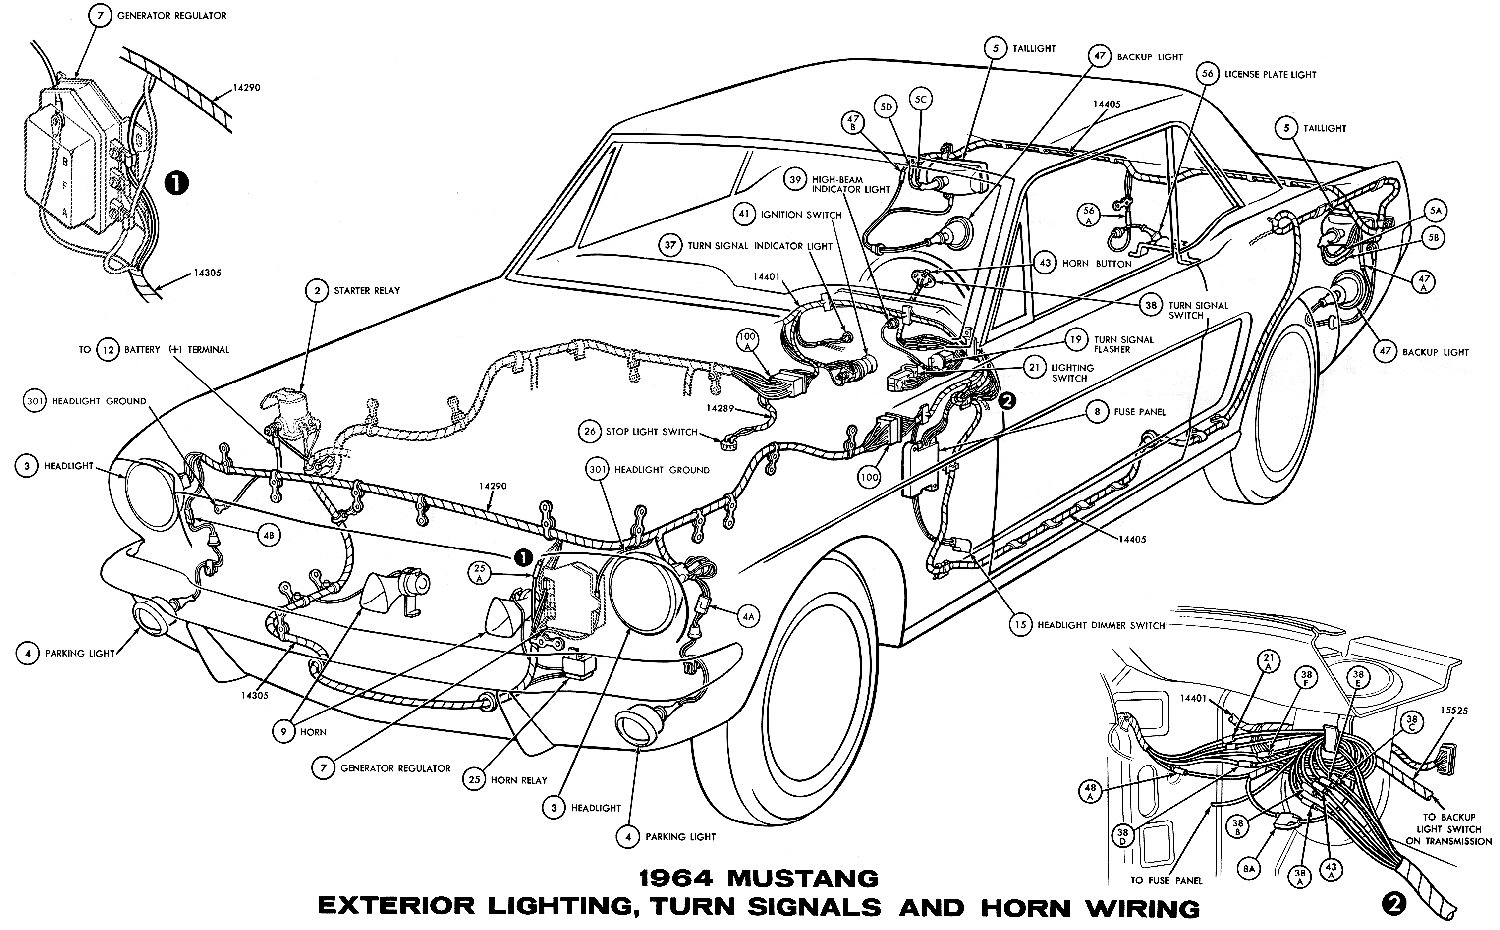 1964 Mustang Wiring Diagrams Average Joe Restoration 24 Volt Voltage Regulator Diagram Sm1964h